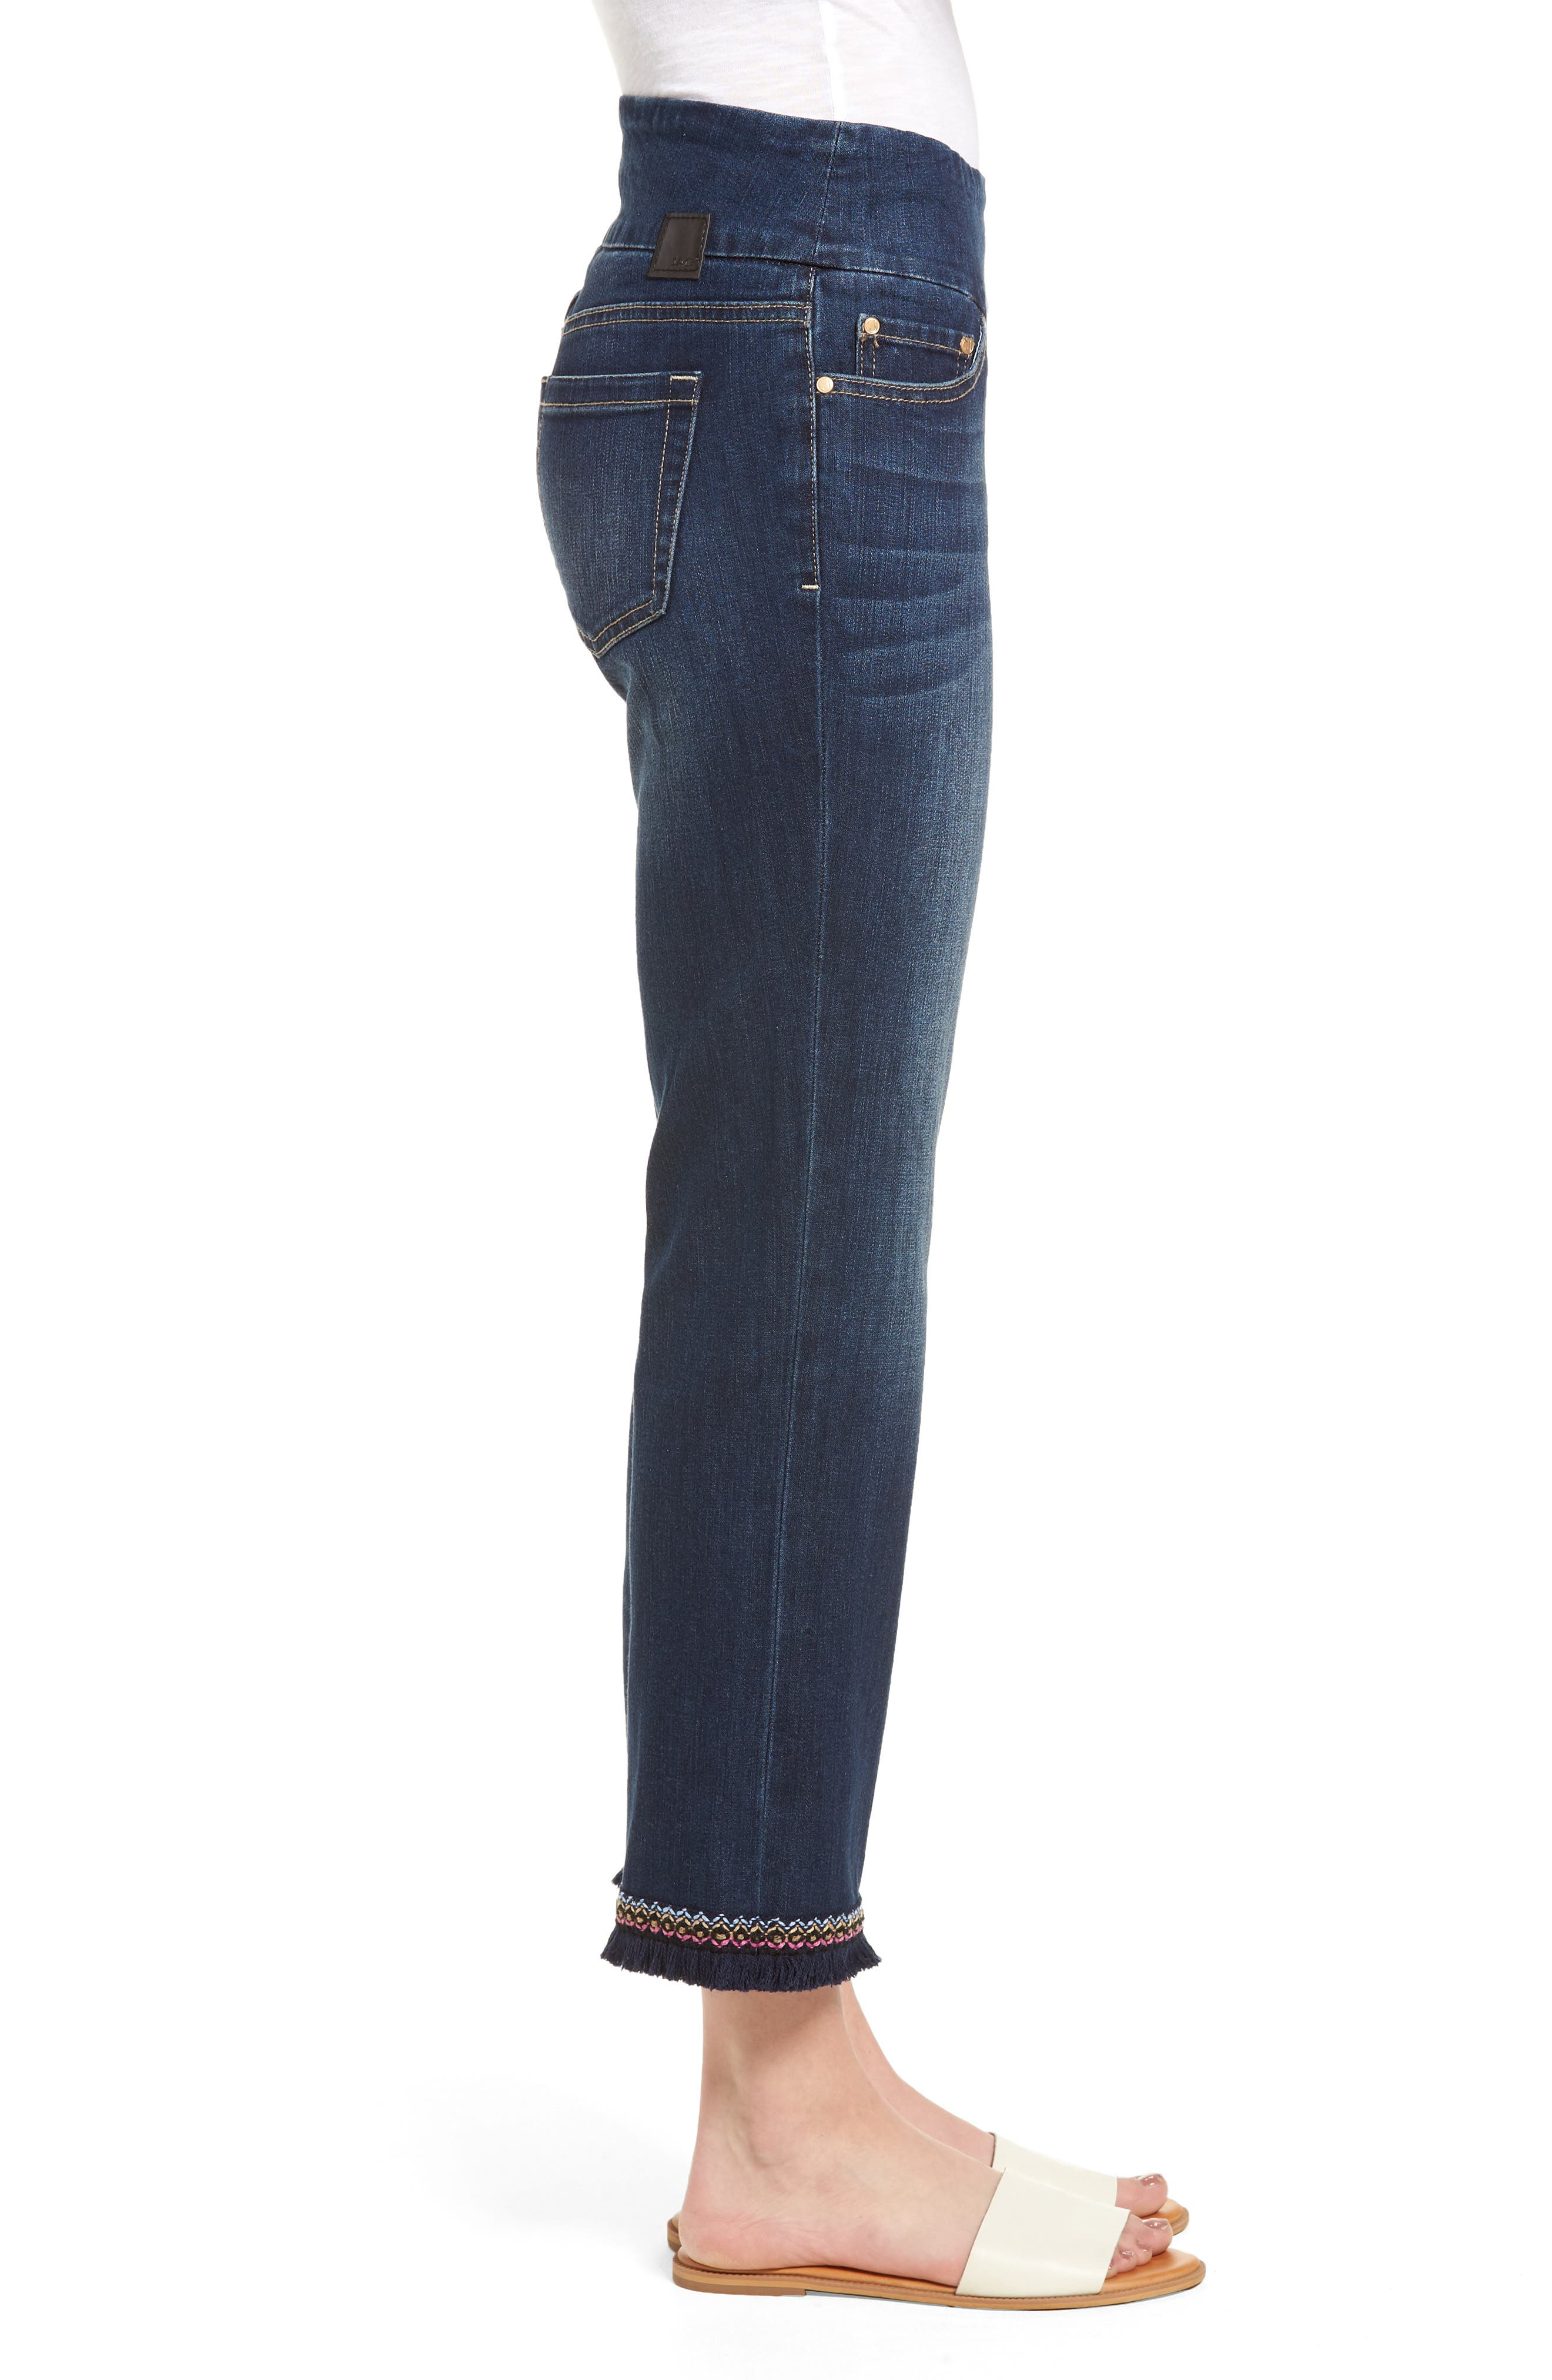 Peri Embroidery Fringe Jeans,                             Alternate thumbnail 3, color,                             Med Indigo